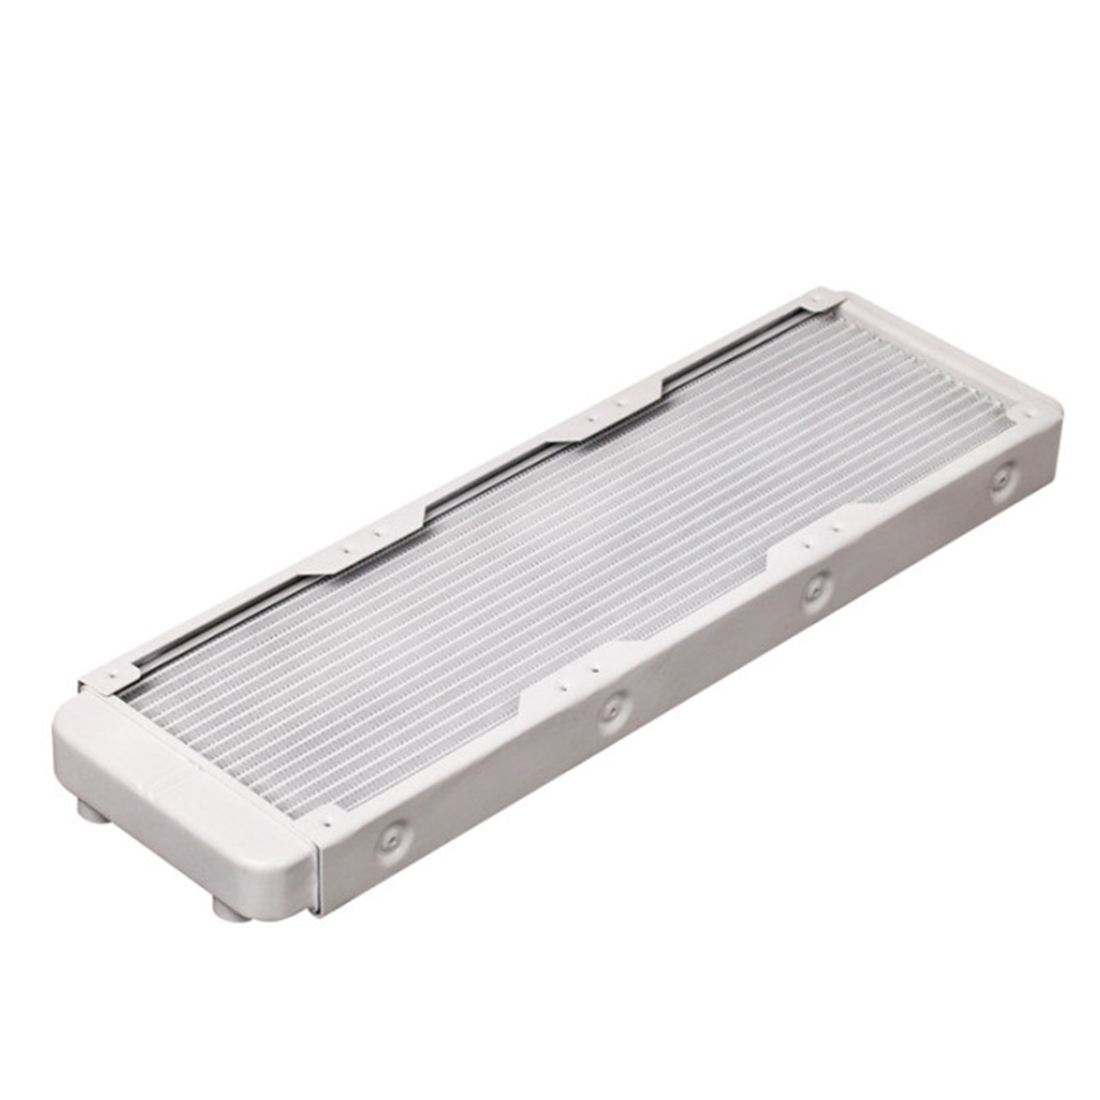 39.5 X 12 X 3cm 360mm Aluminum Computer Radiator Water Cooler Cooling Heatsink Exchanger Water Cool System For Computer - White